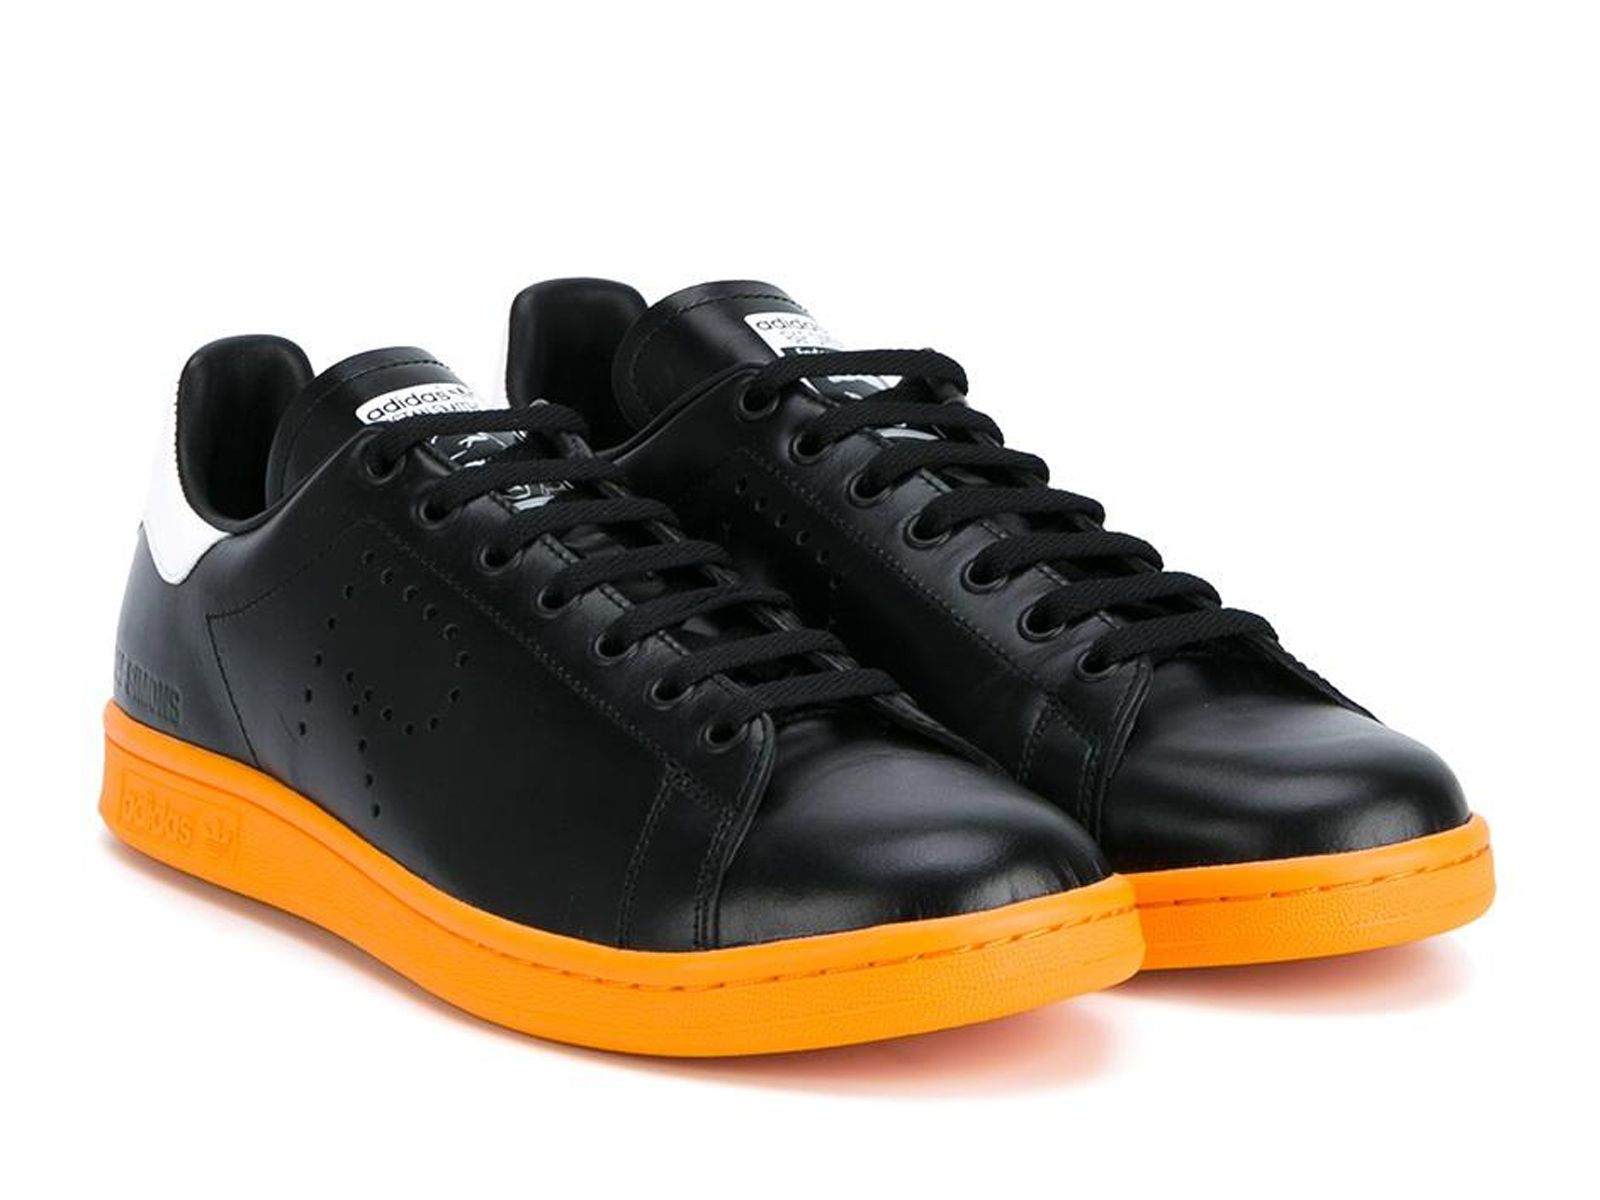 291292d6dcc0 Adidas Stan Smith by Raf Simons sneakers in black Leather - Italian  Boutique €213